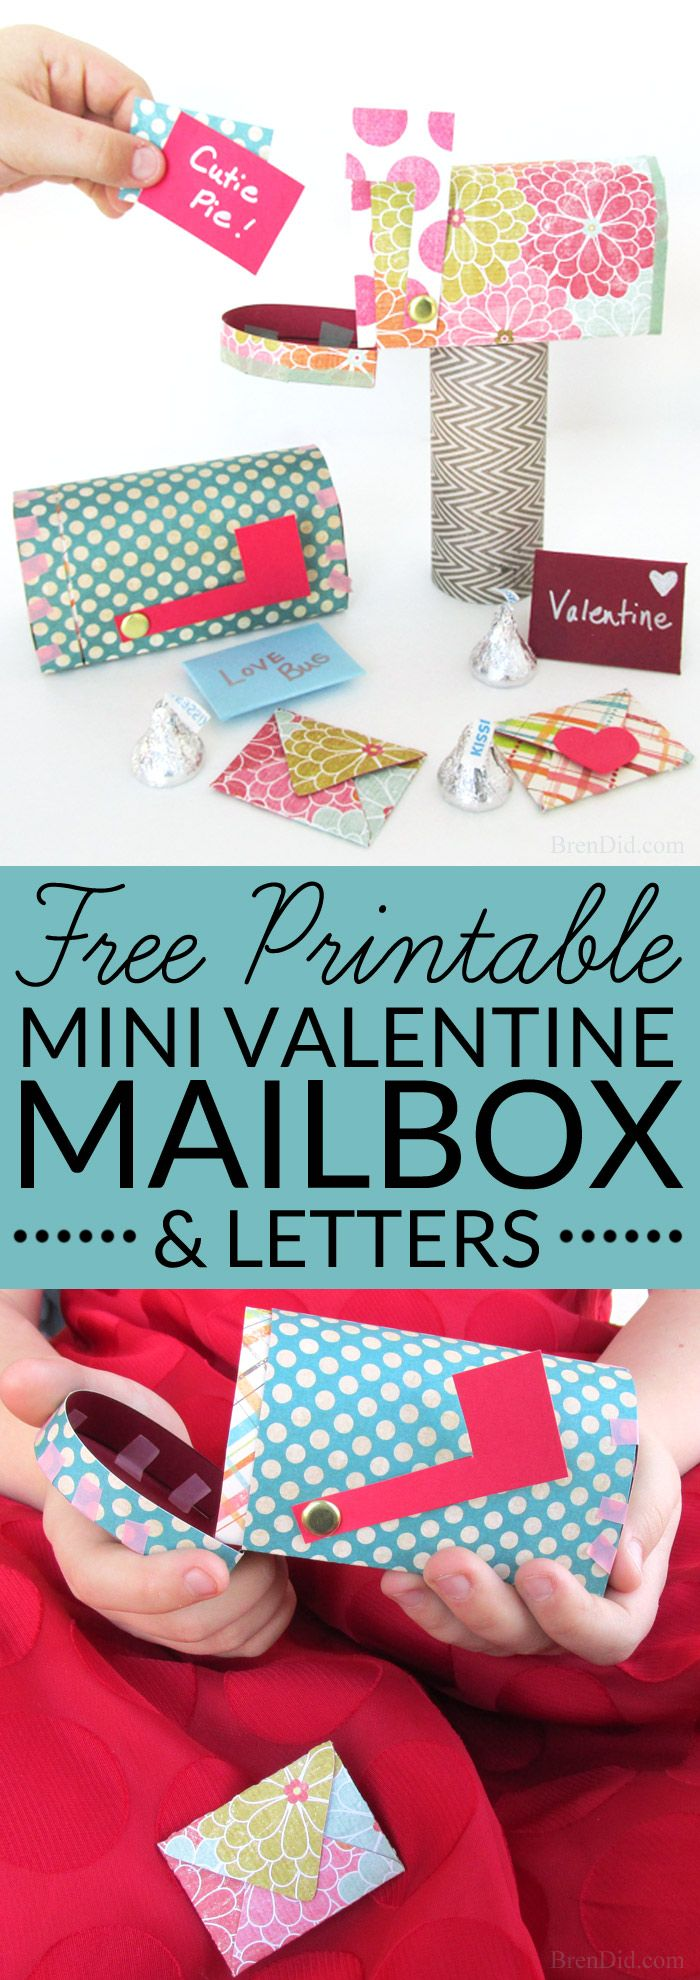 Send tiny love notes with this free Valentine Paper Craft set featuring a free printable Valentine mailbox and mini Valentine's Day cards. It's an easy Valentine craft that can be used to hold sweets or just sweet sentiments! Get the pattern and instructions at BrenDid.com.